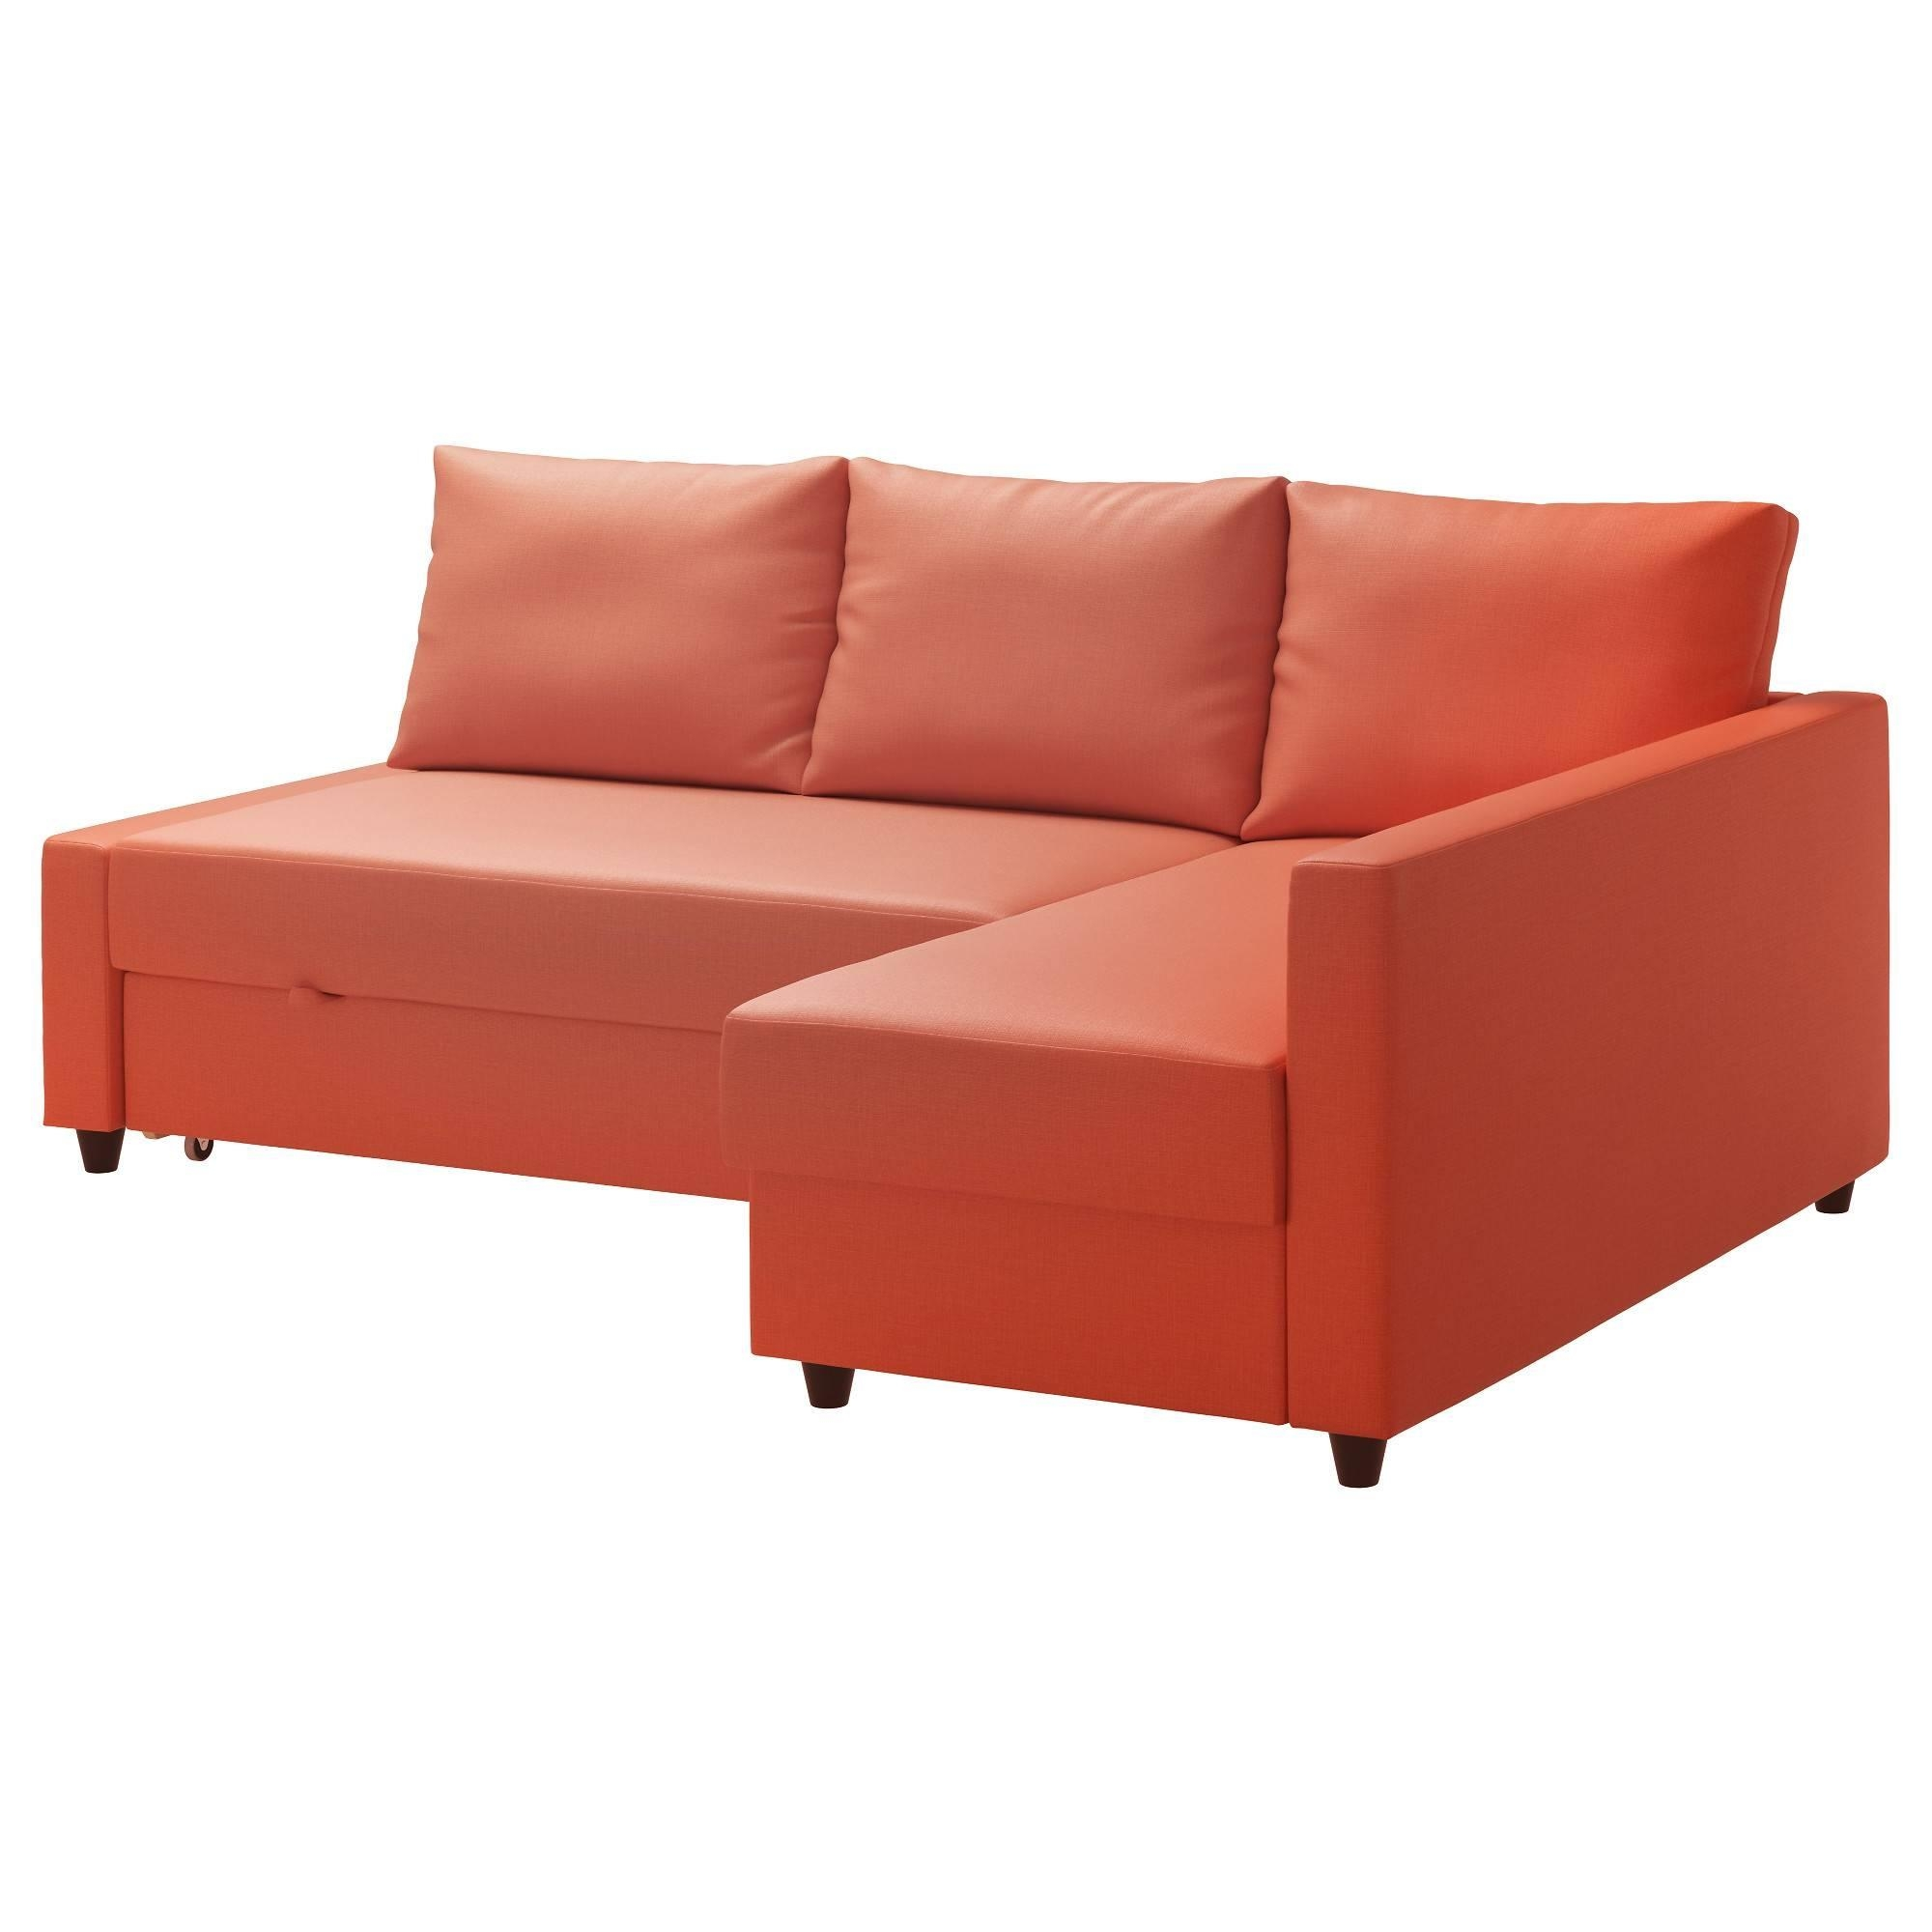 Sofa : Sofa Bed Ikea Usa Equanimous Discount Sofa Beds' Momentous In Red Sofa Beds Ikea (View 10 of 20)